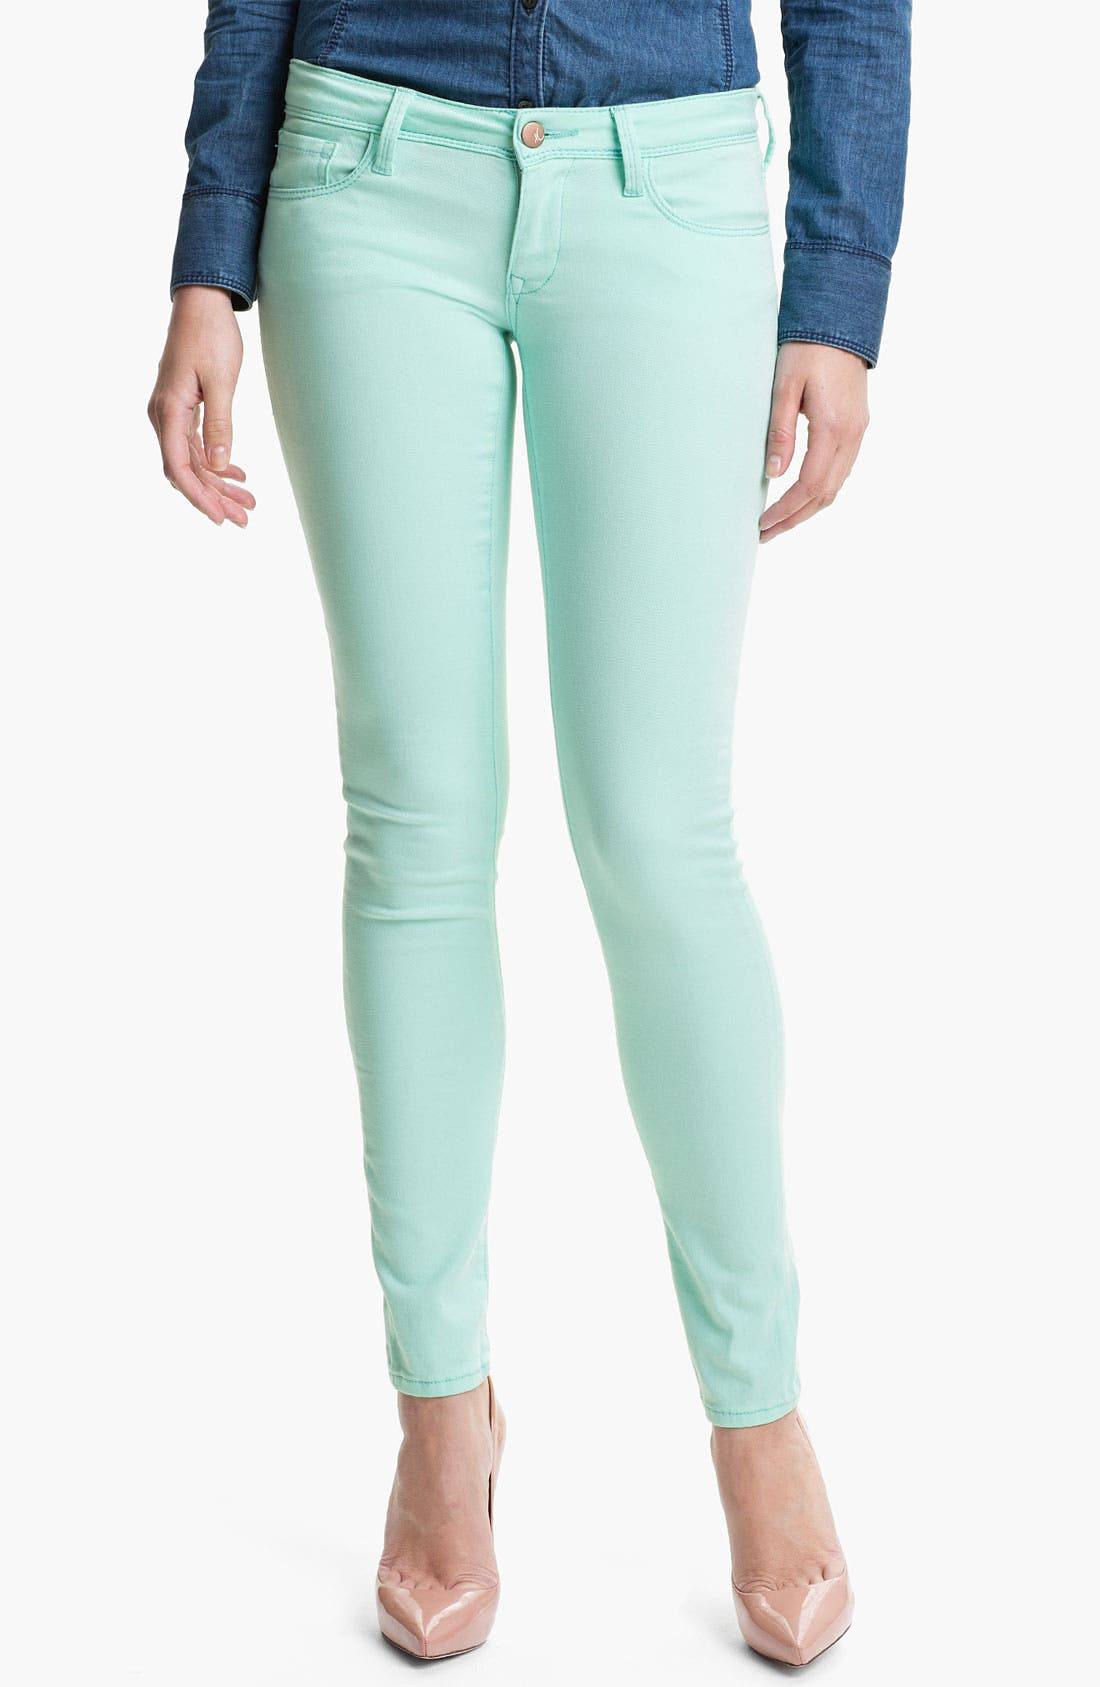 Main Image - Mavi Jeans 'Serena' Low Rise Super Skinny Jeans (Online Exclusive)